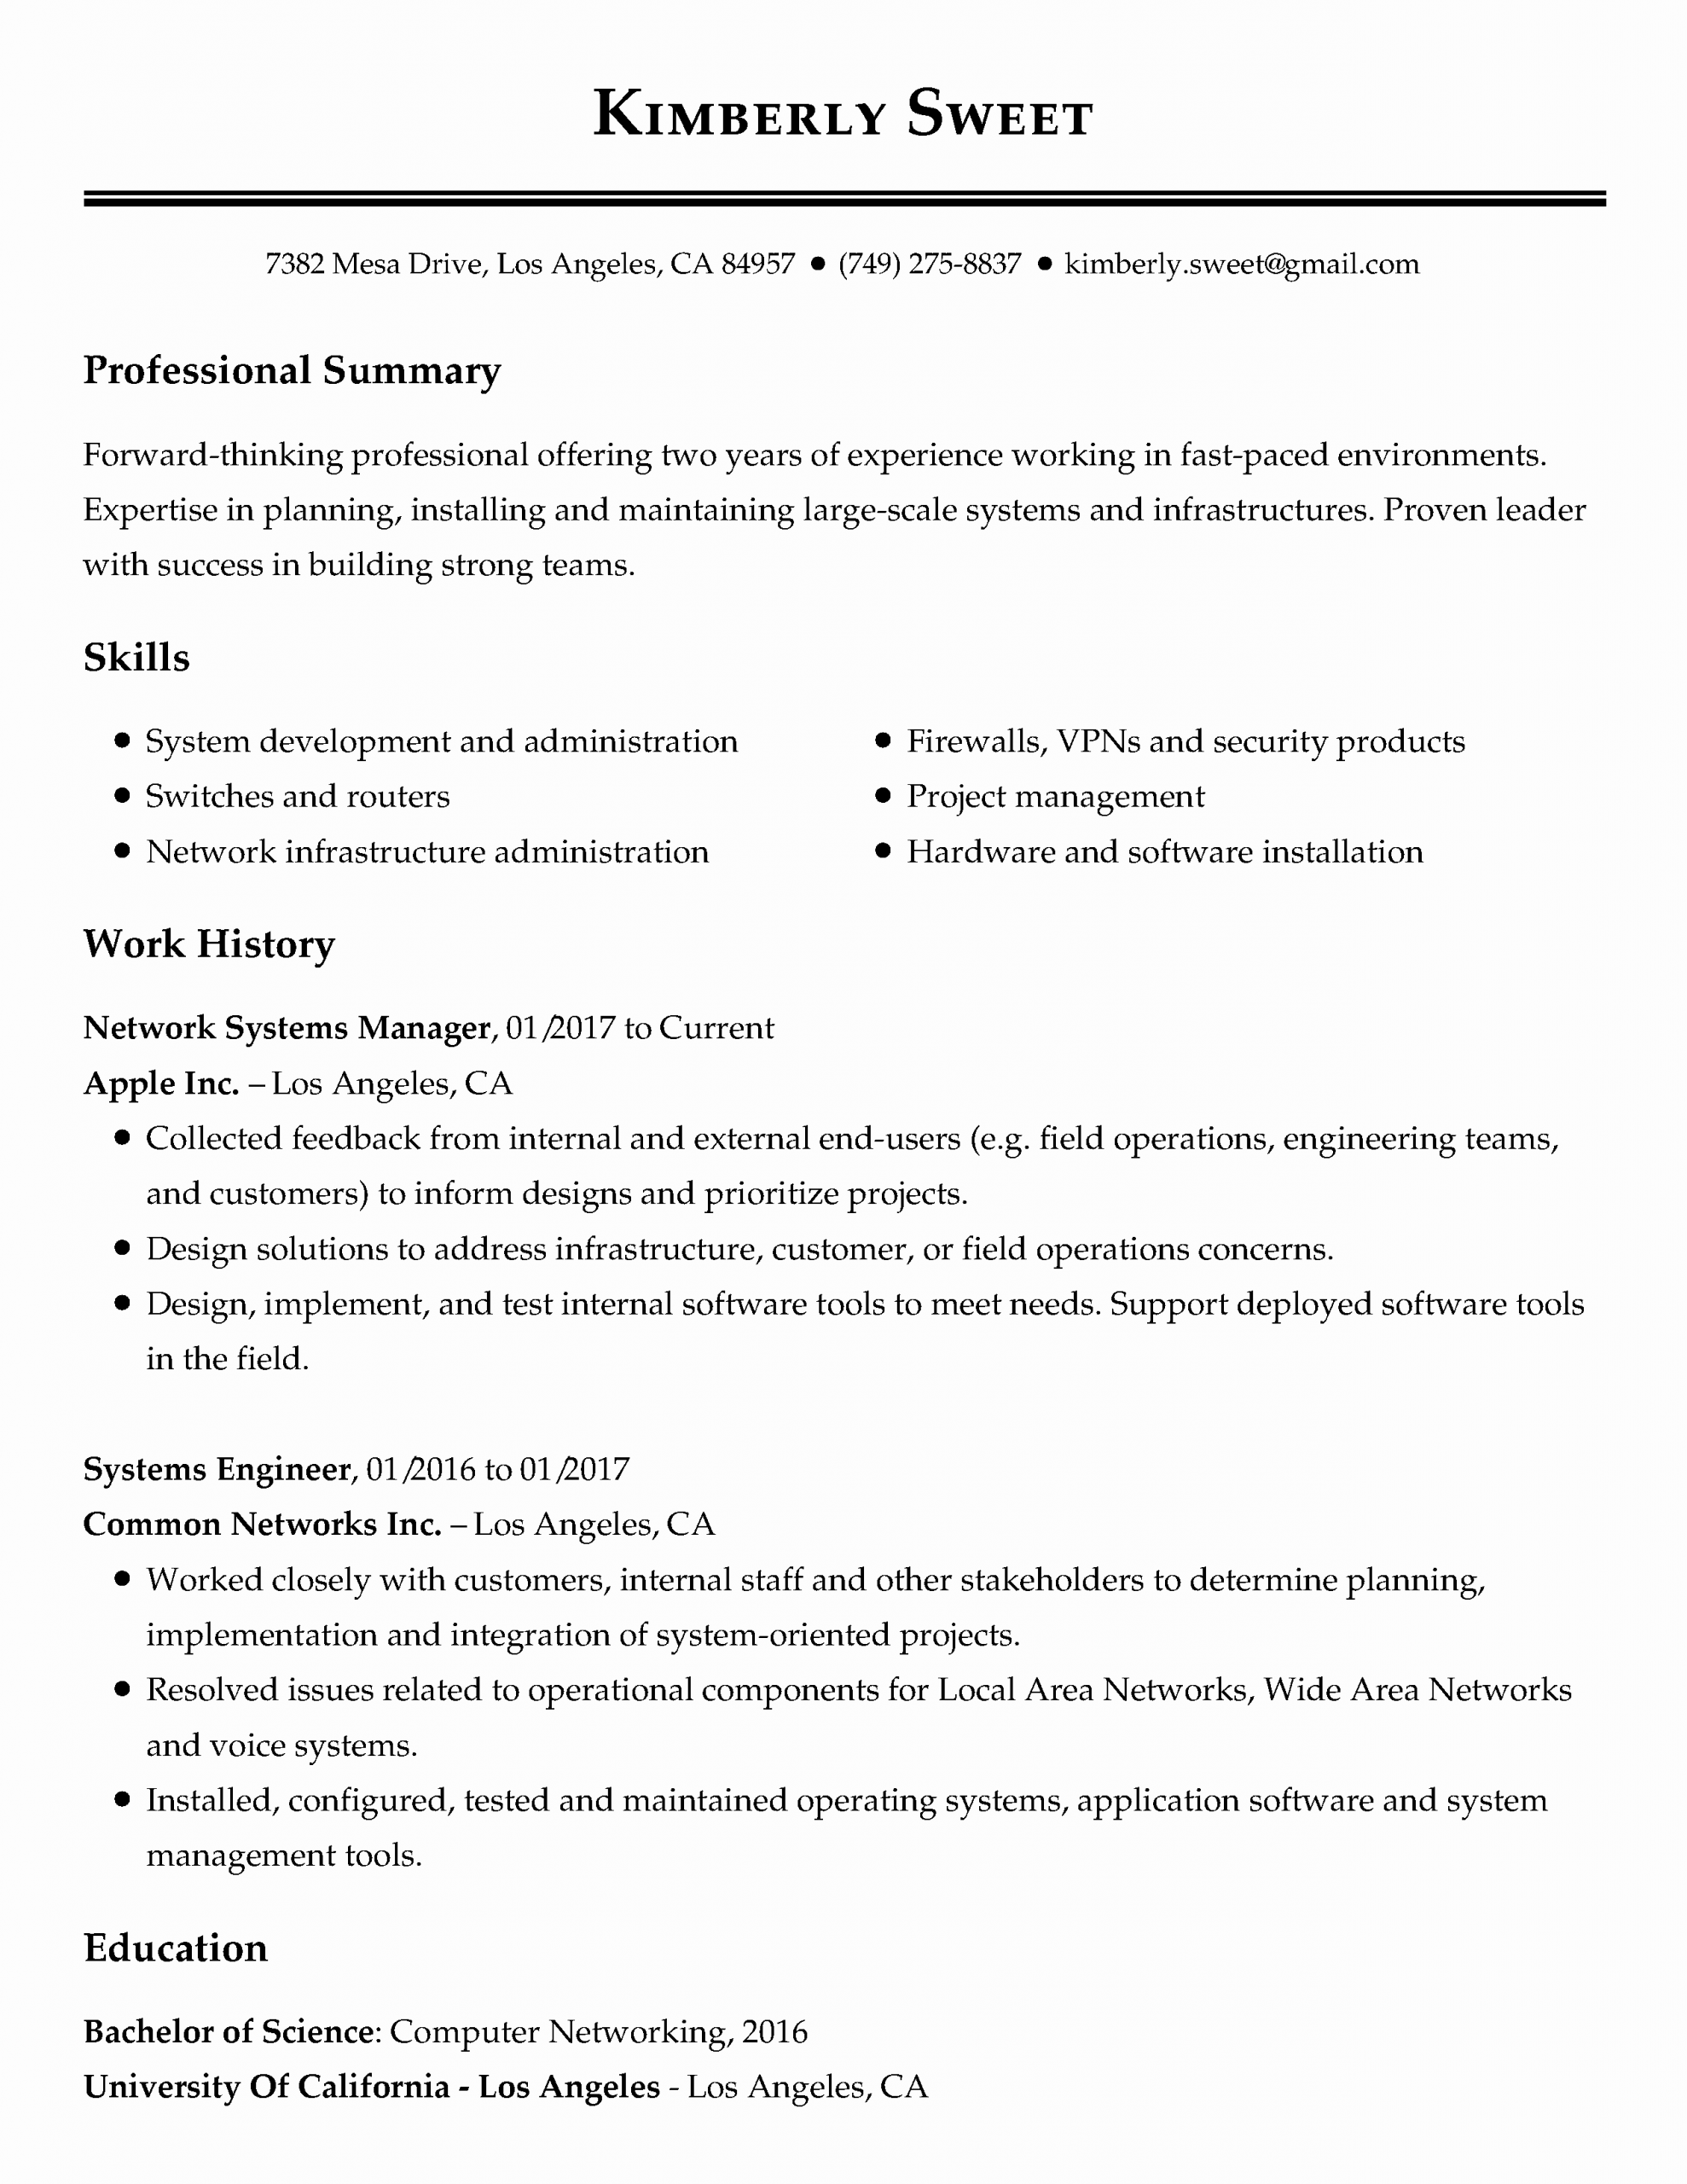 Examples Of Resume Titles Elegant Free Resume Examples By Industry Job Title Resume Template Examples Teacher Resume Examples Resume Examples